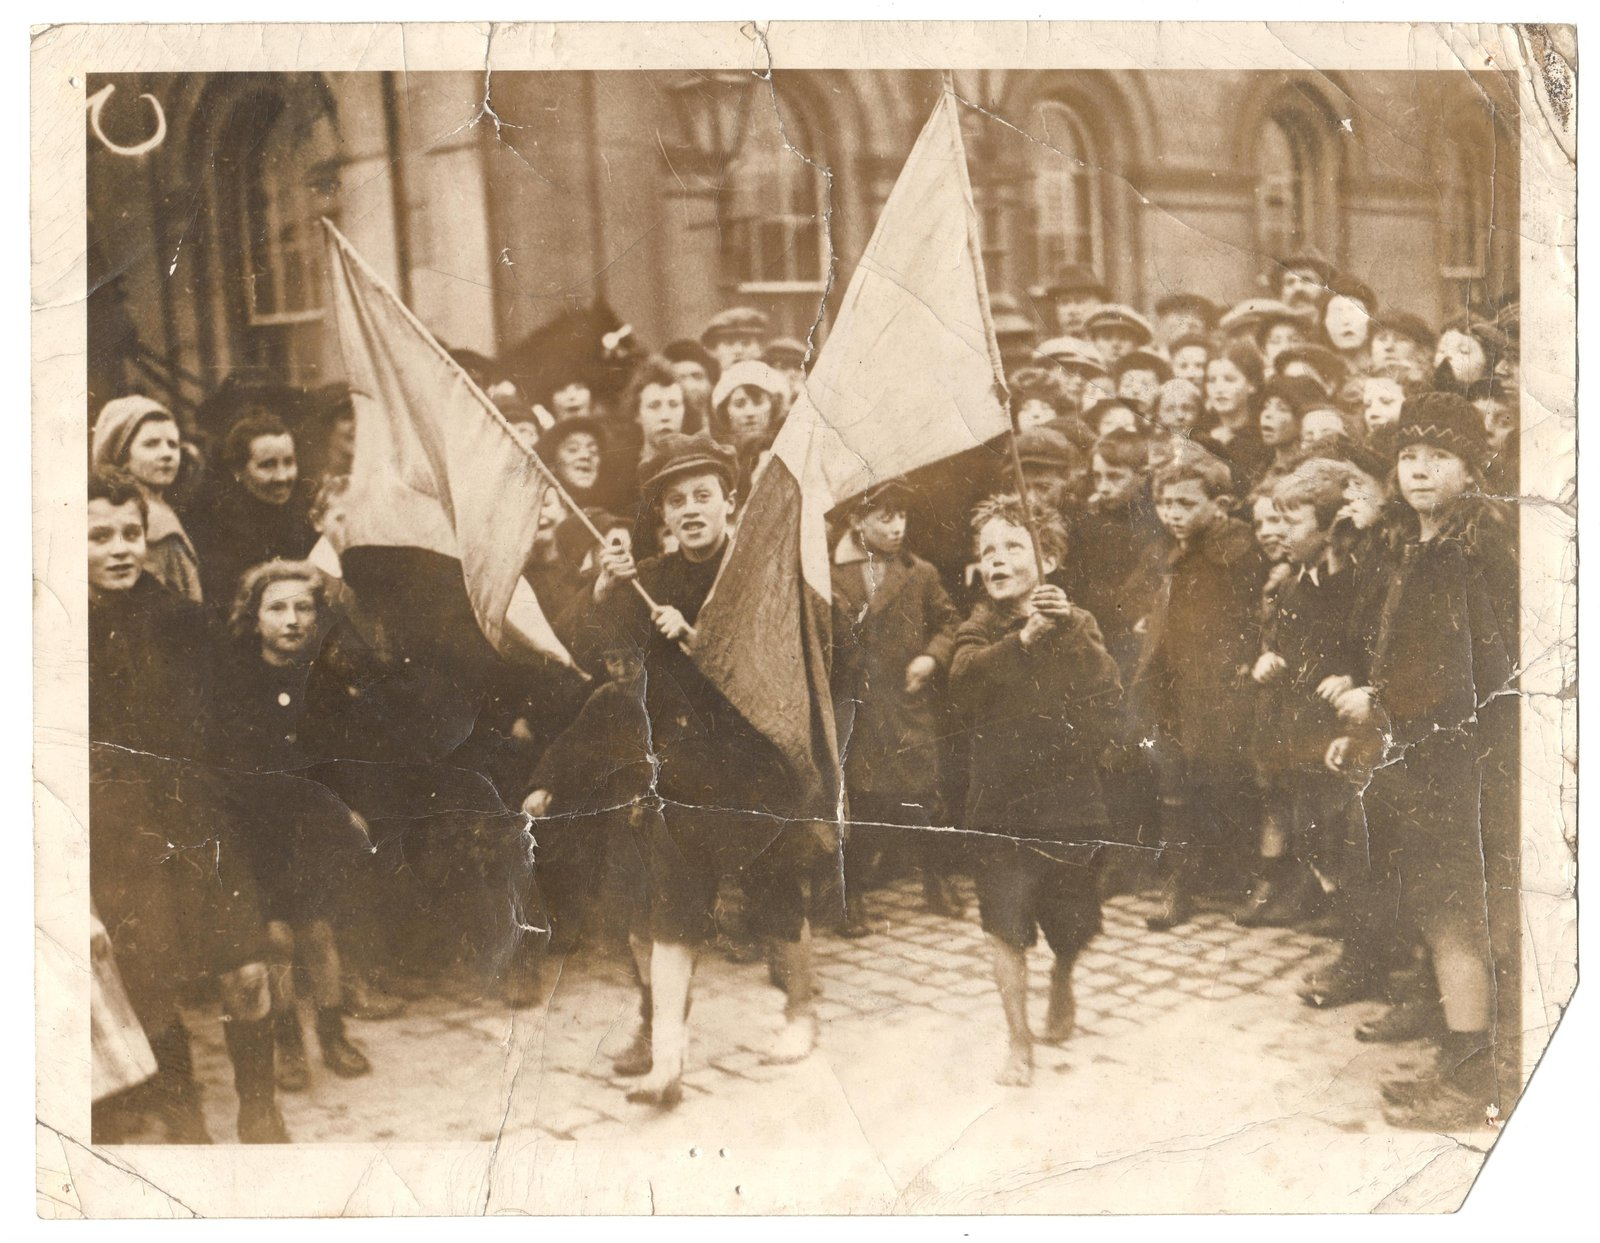 Image - Joy on the streets of Dublin after the Truce was declared: children wave Tricolours. (Credit: Courtesy of Kilmainham Gaol Museum.19PO-1A33-24)